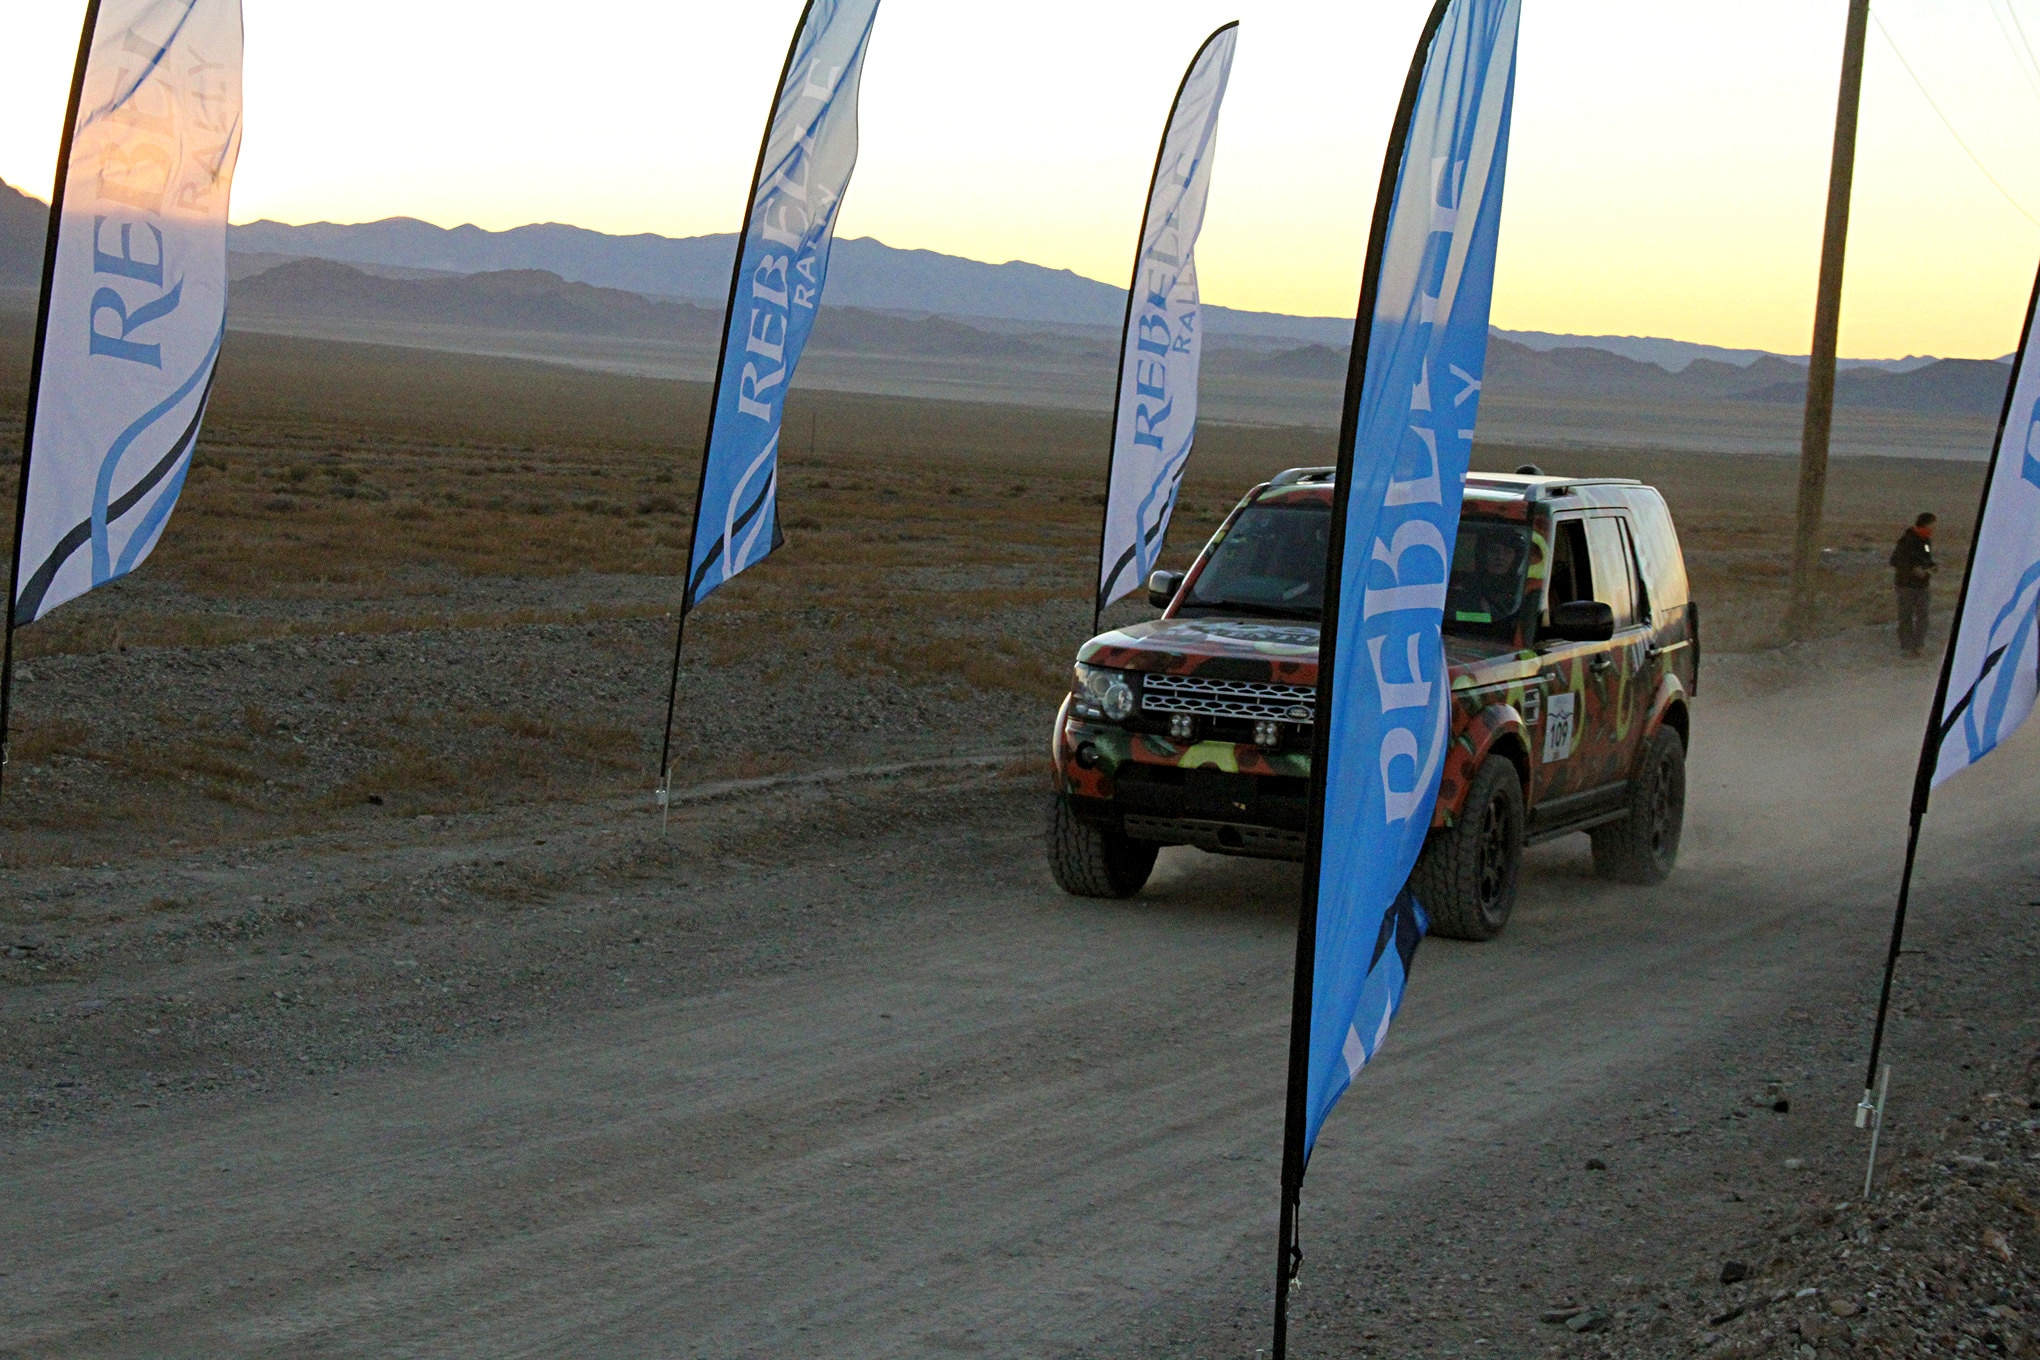 A wide variety of stock vehicles were entered in the Rally.